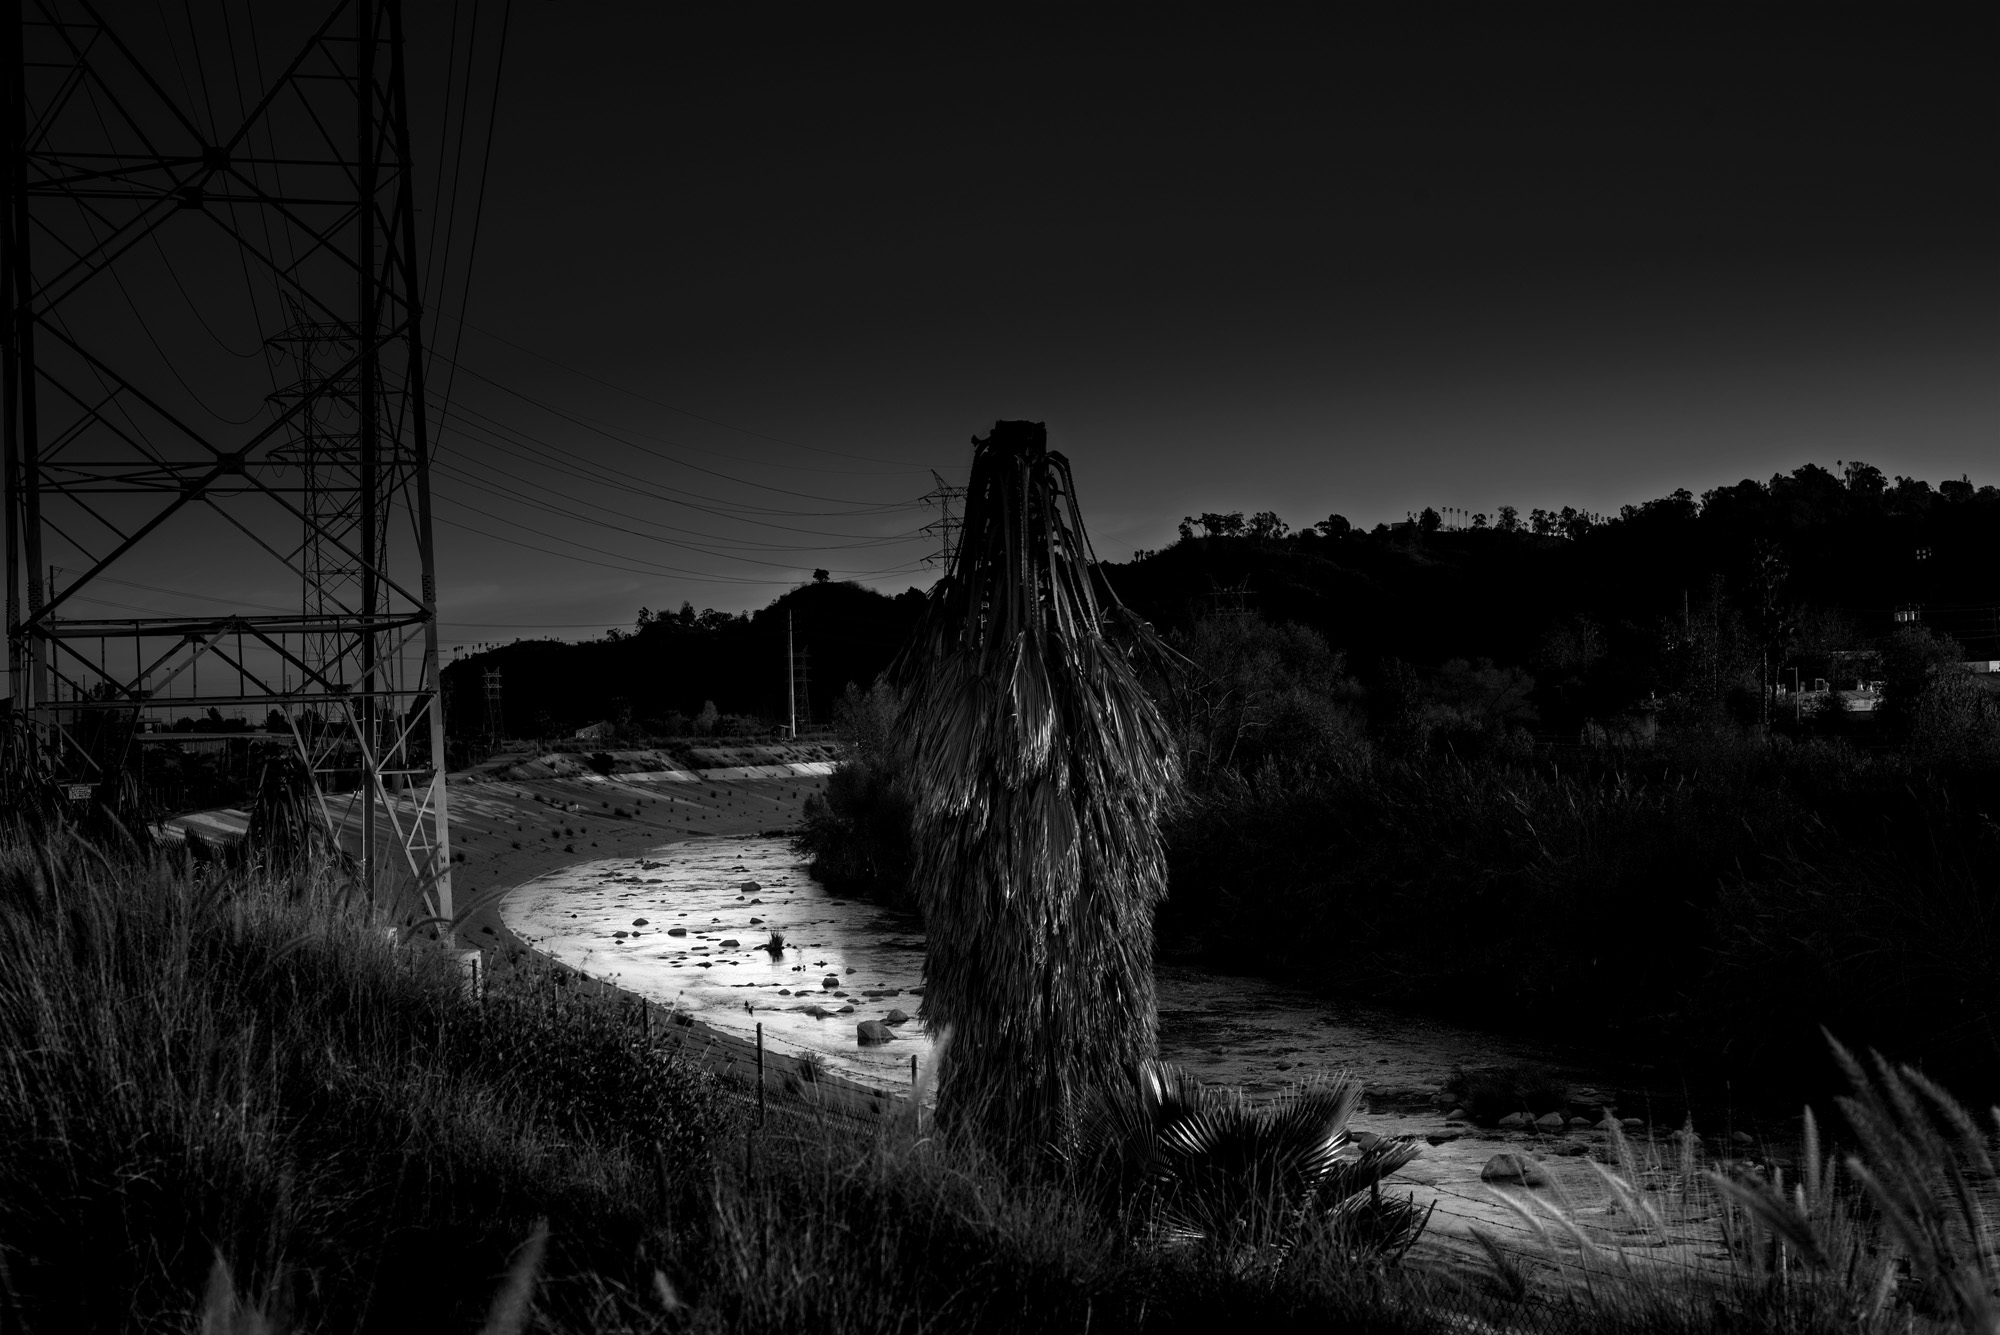 Untitled L.A. River no.4 from LA-LIKE: Day For Night (Sunlight as Spotlight)